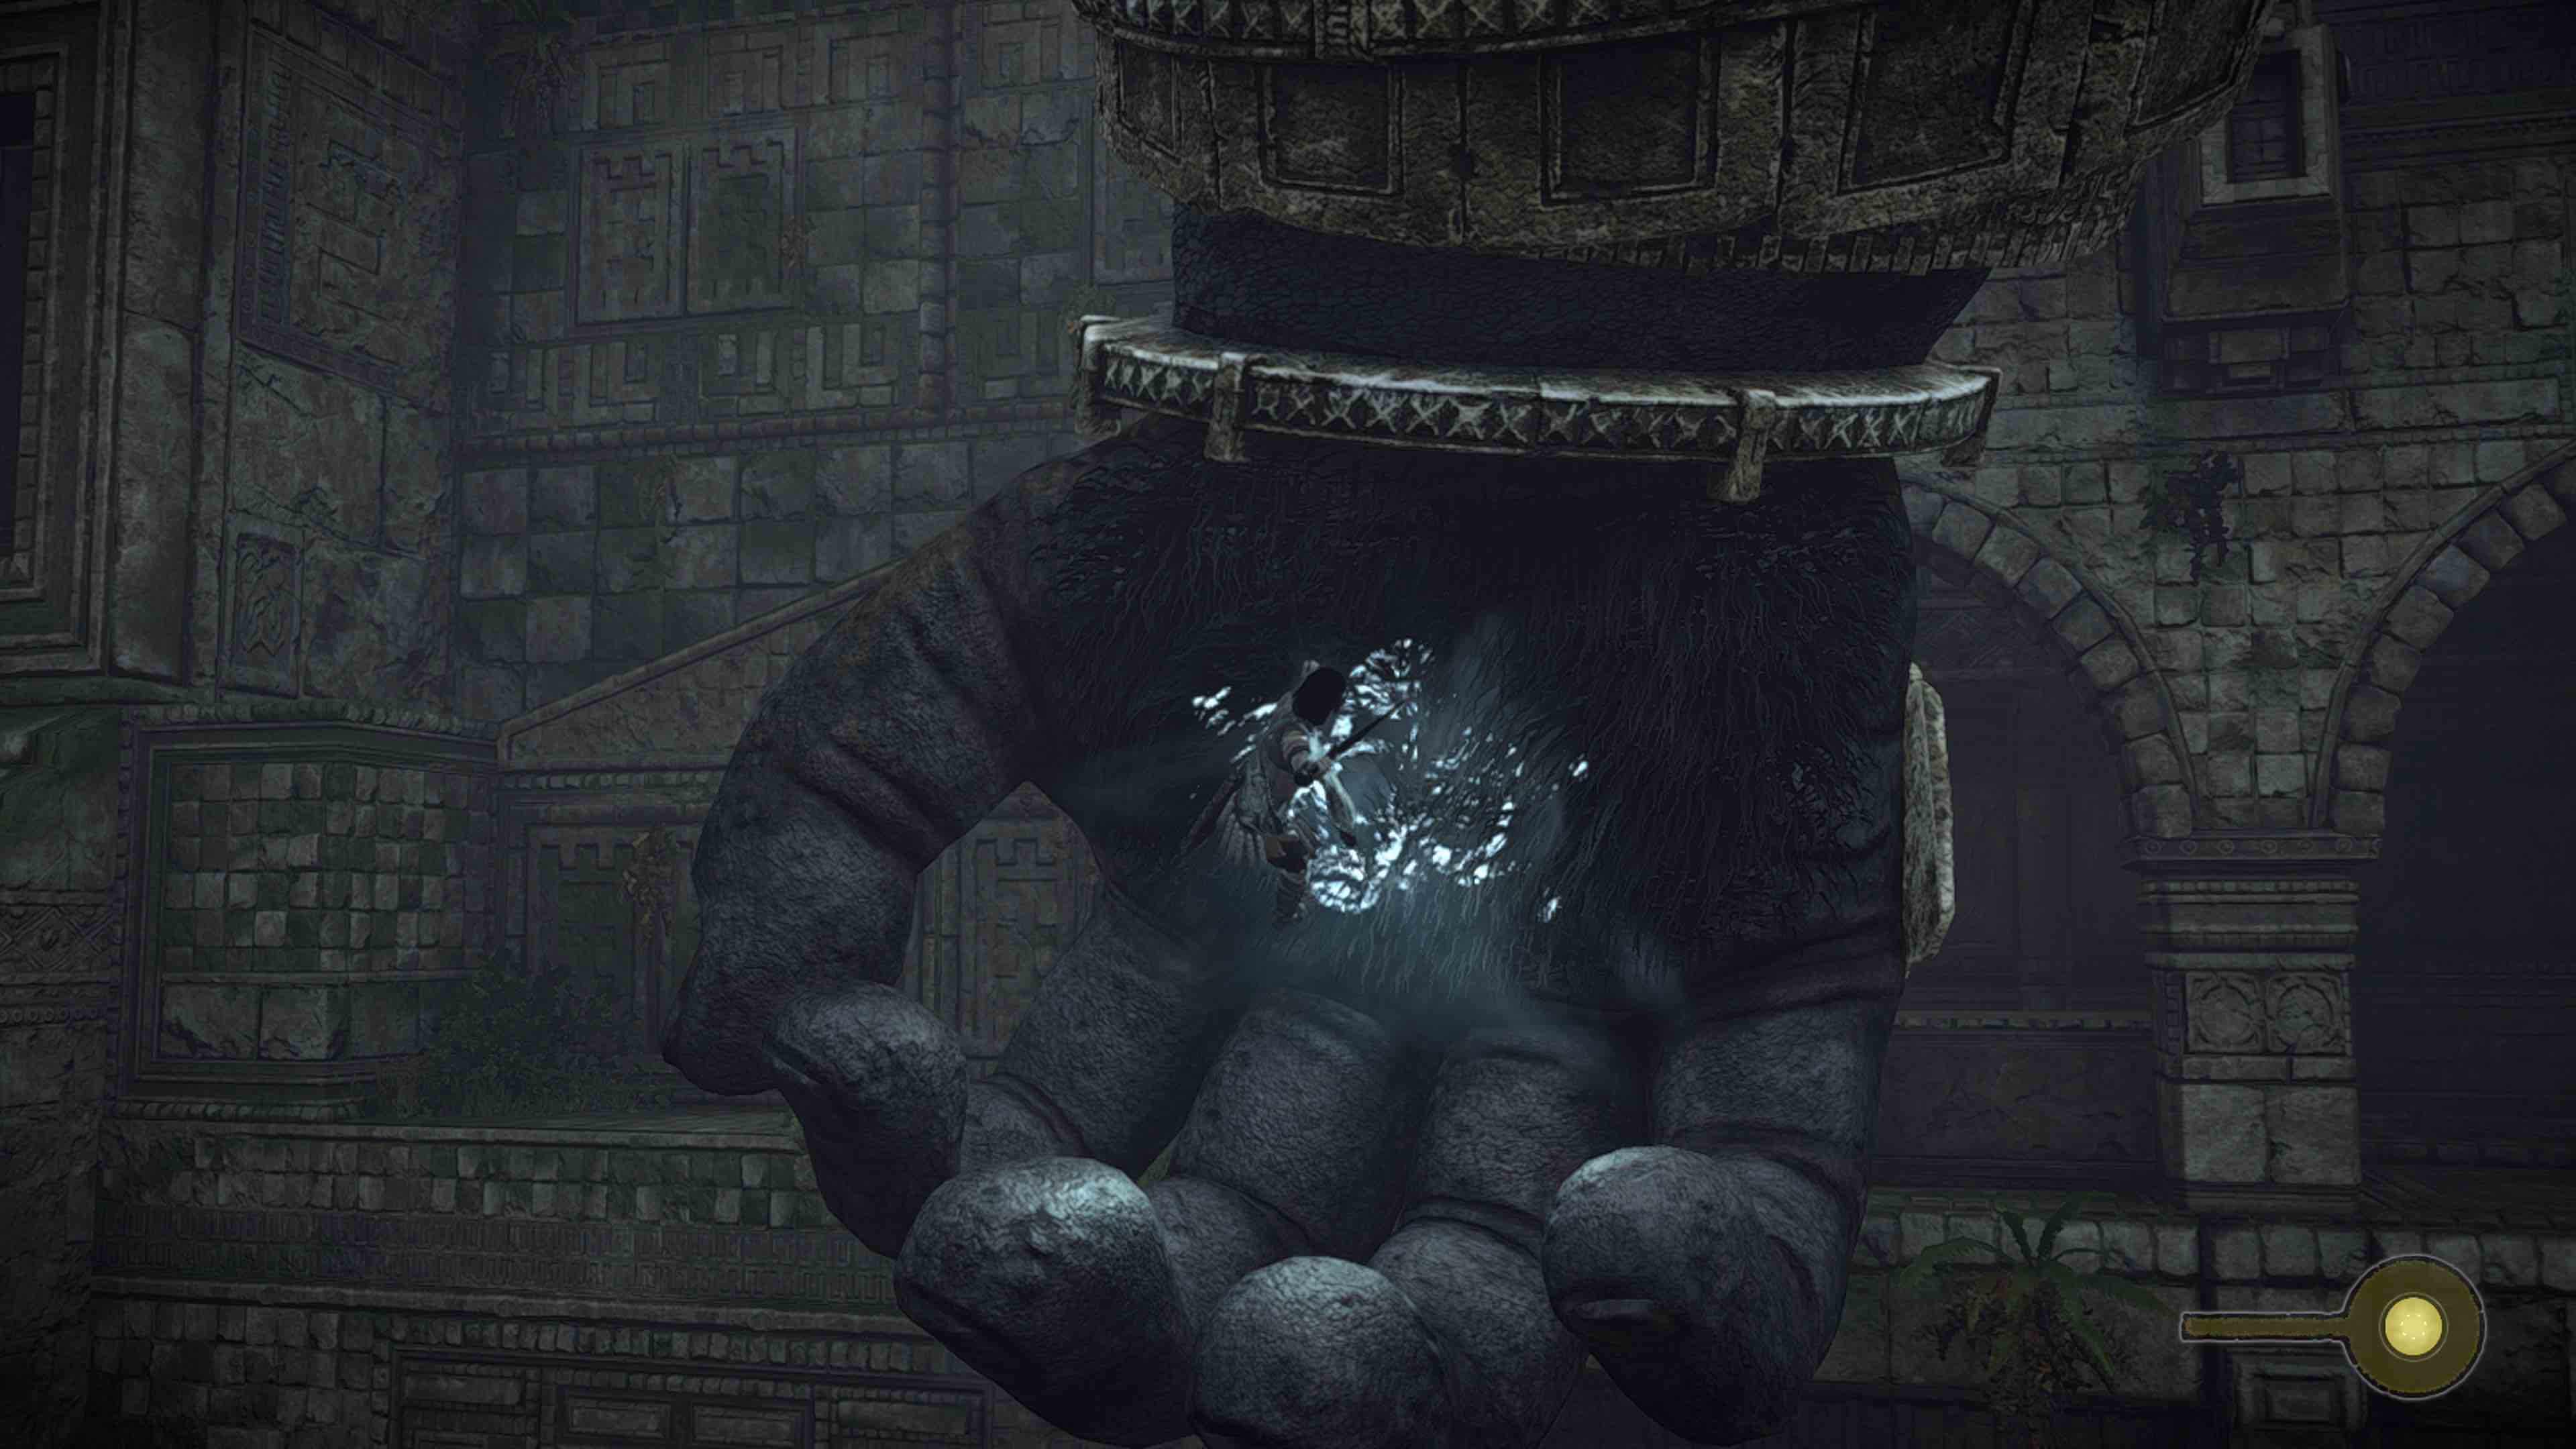 Shadow_of_the_Colossus_Analisis_14